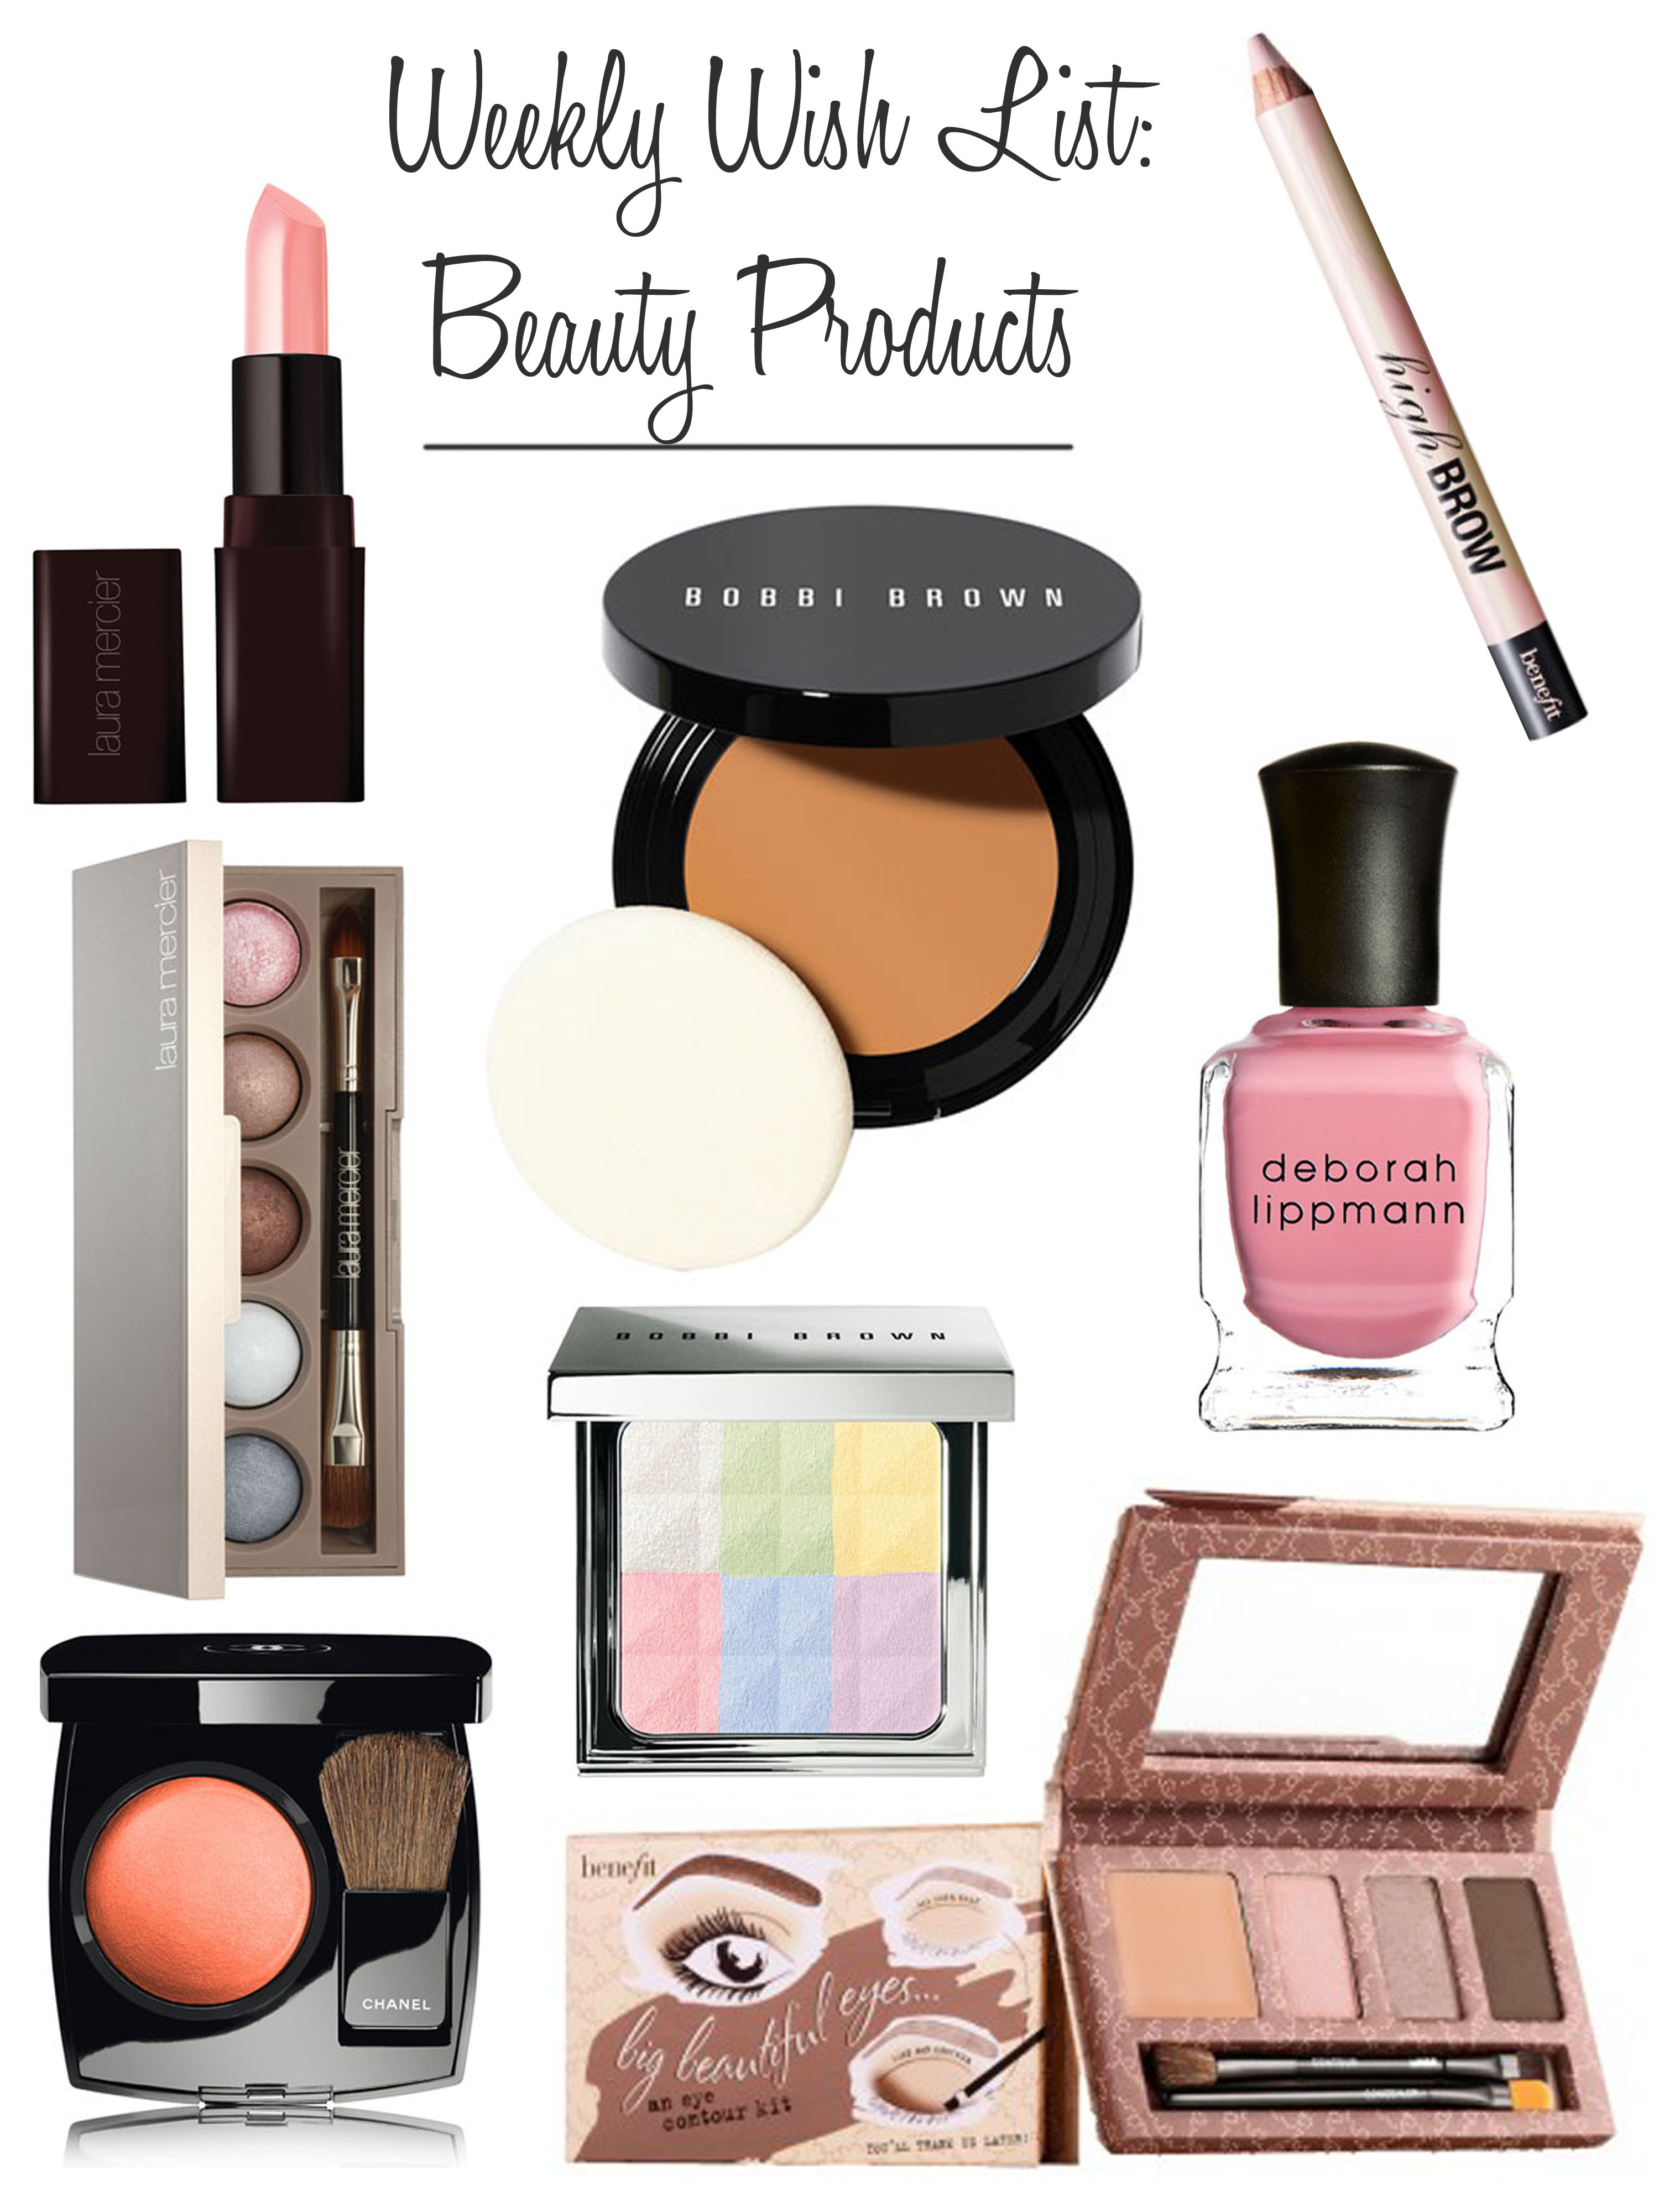 Weekly Wish List: Beauty Products